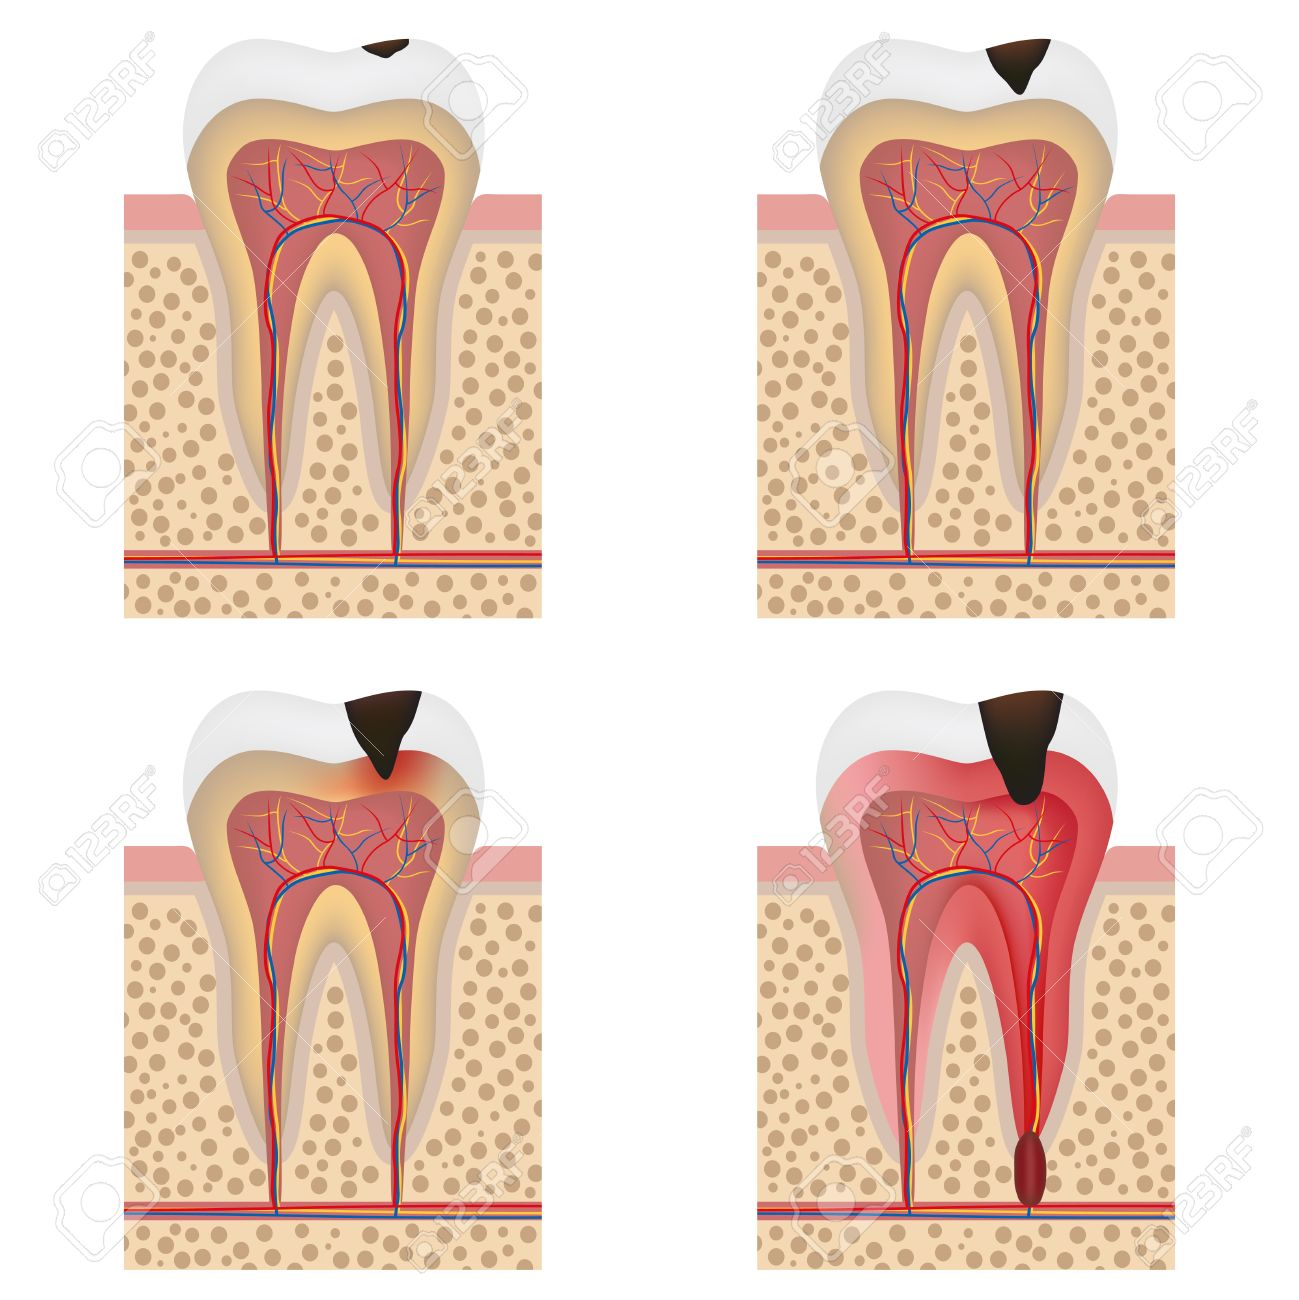 Stages of tooth decay illustration  Development of dental caries